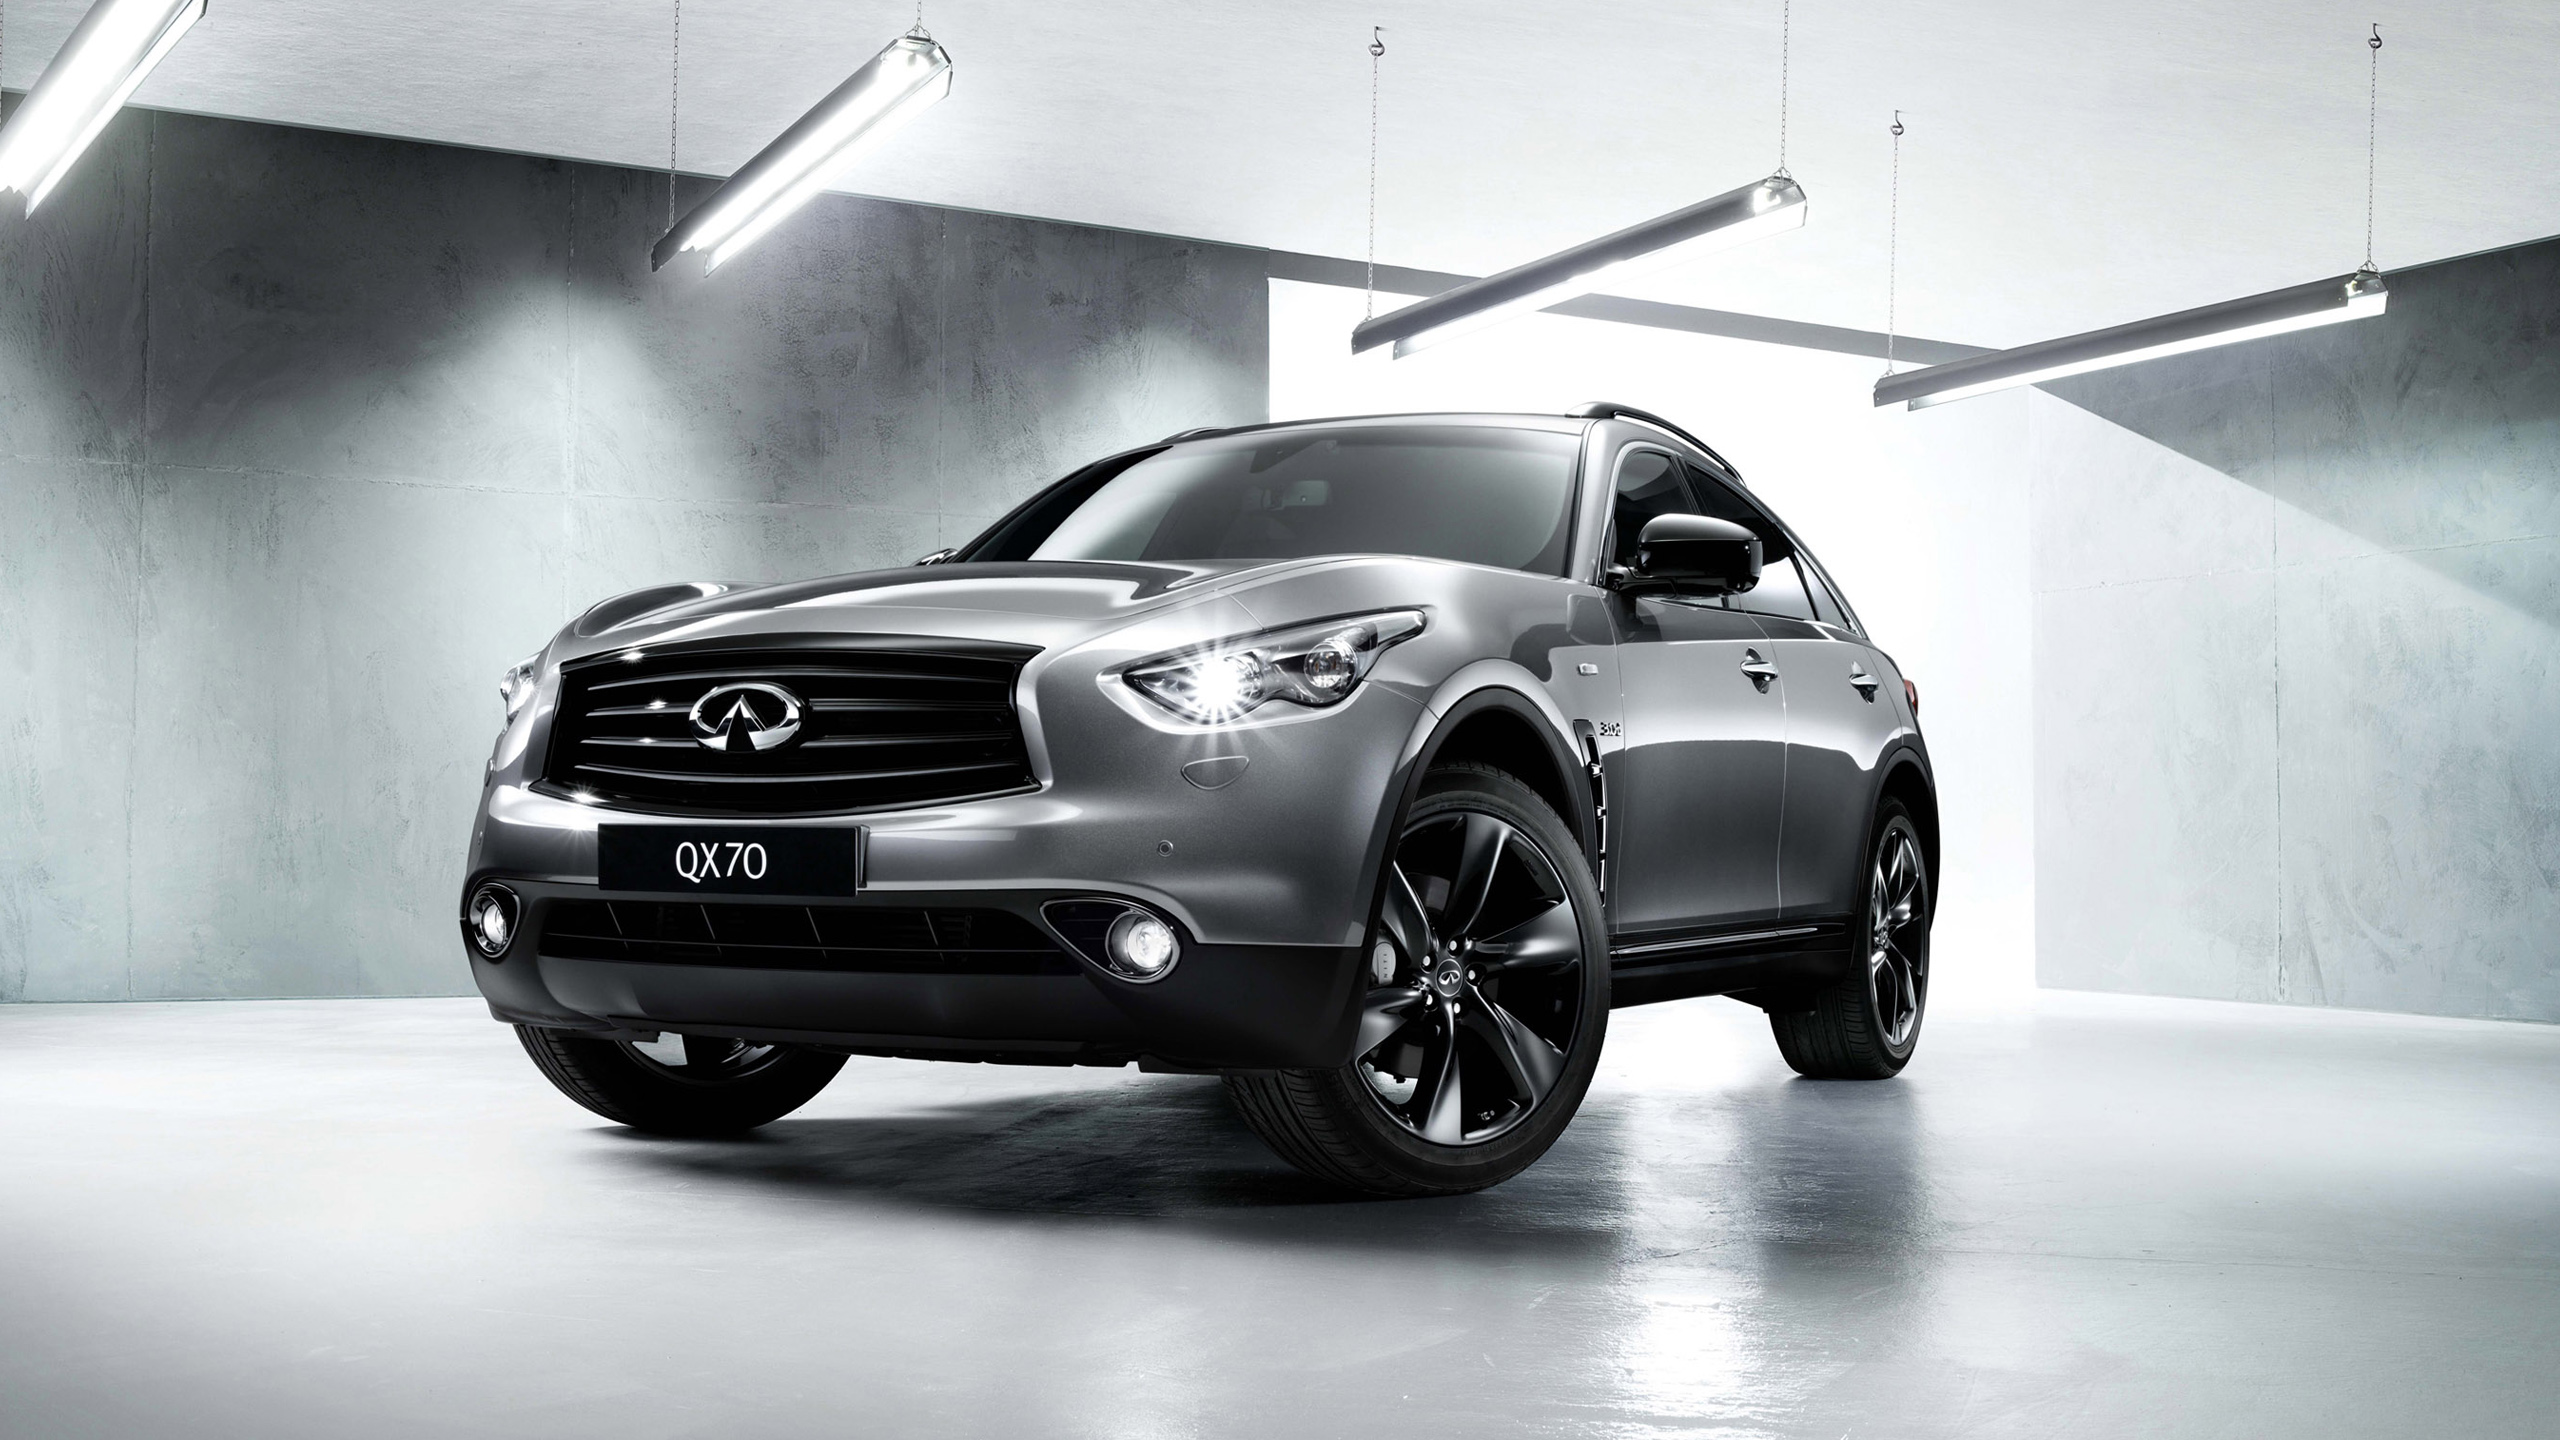 2015 infiniti qx70s wallpaper 47489